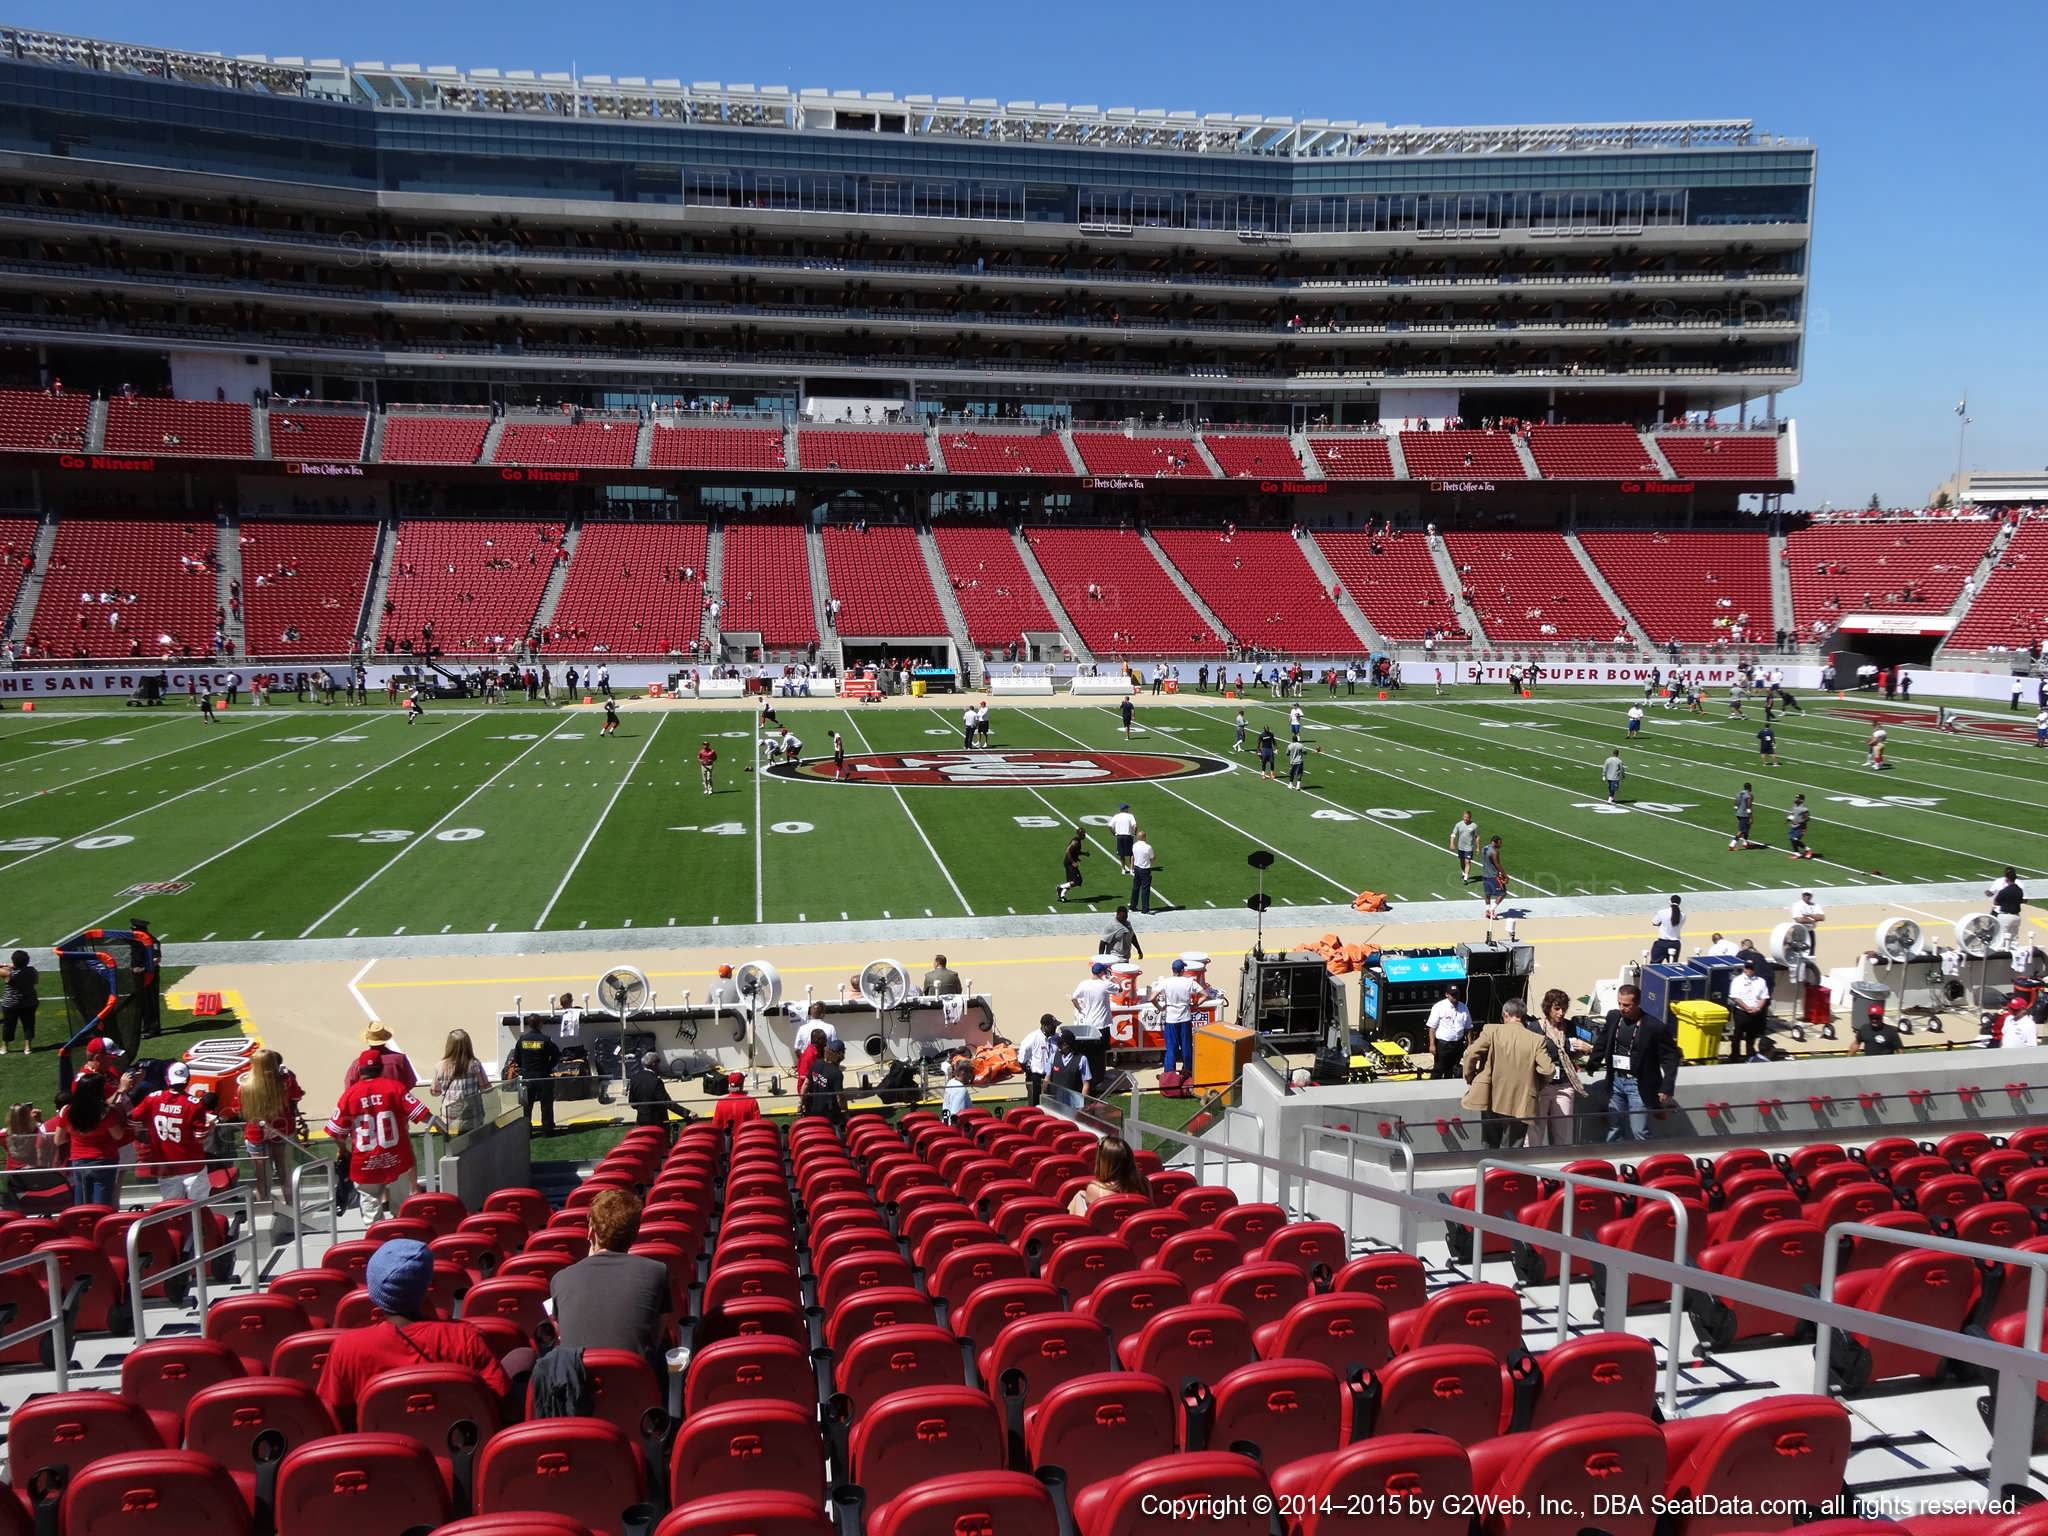 Seat view from section 116 at Levi's Stadium, home of the San Francisco 49ers